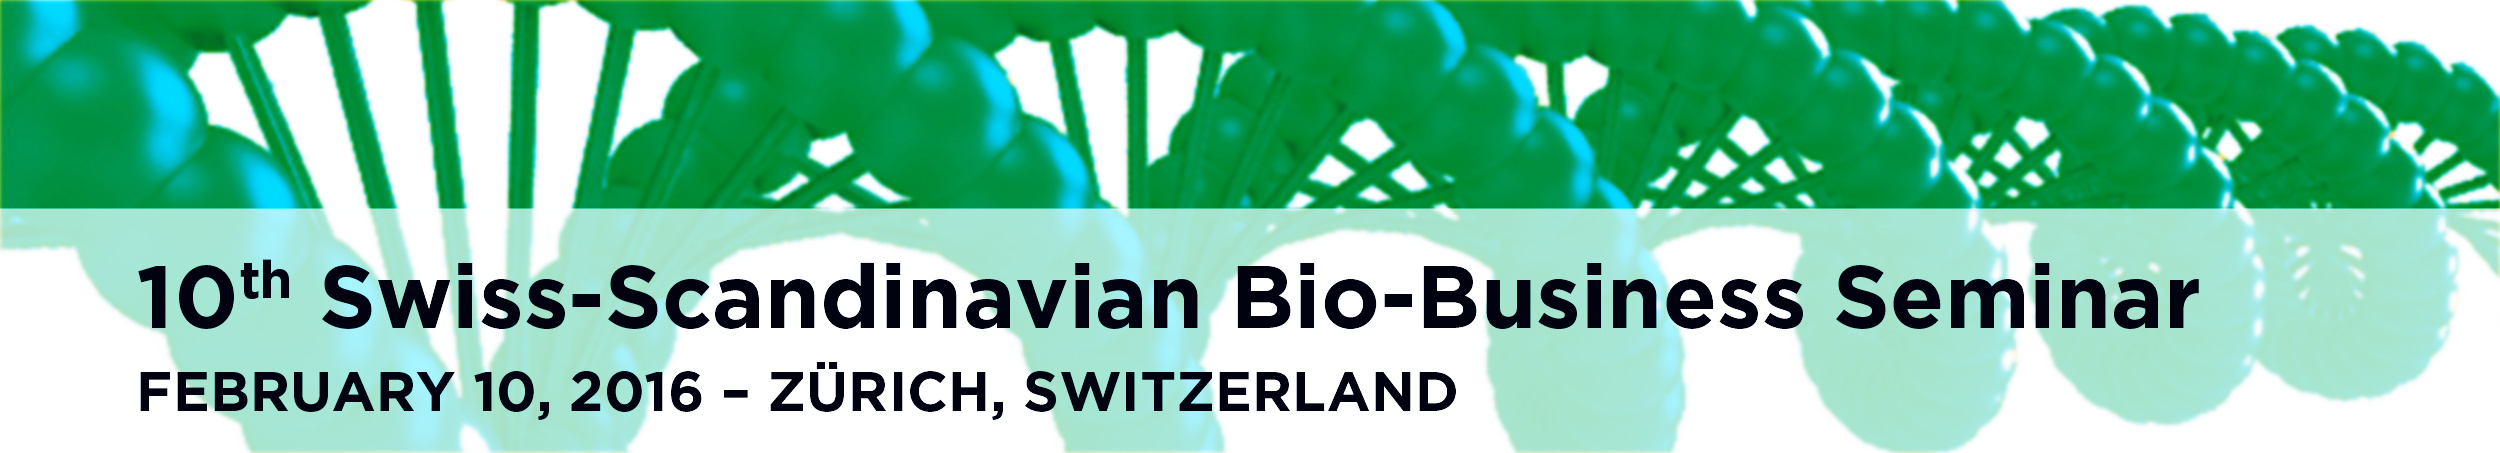 2016 - 10th Swiss-Scandinavian Bio-Business Seminar